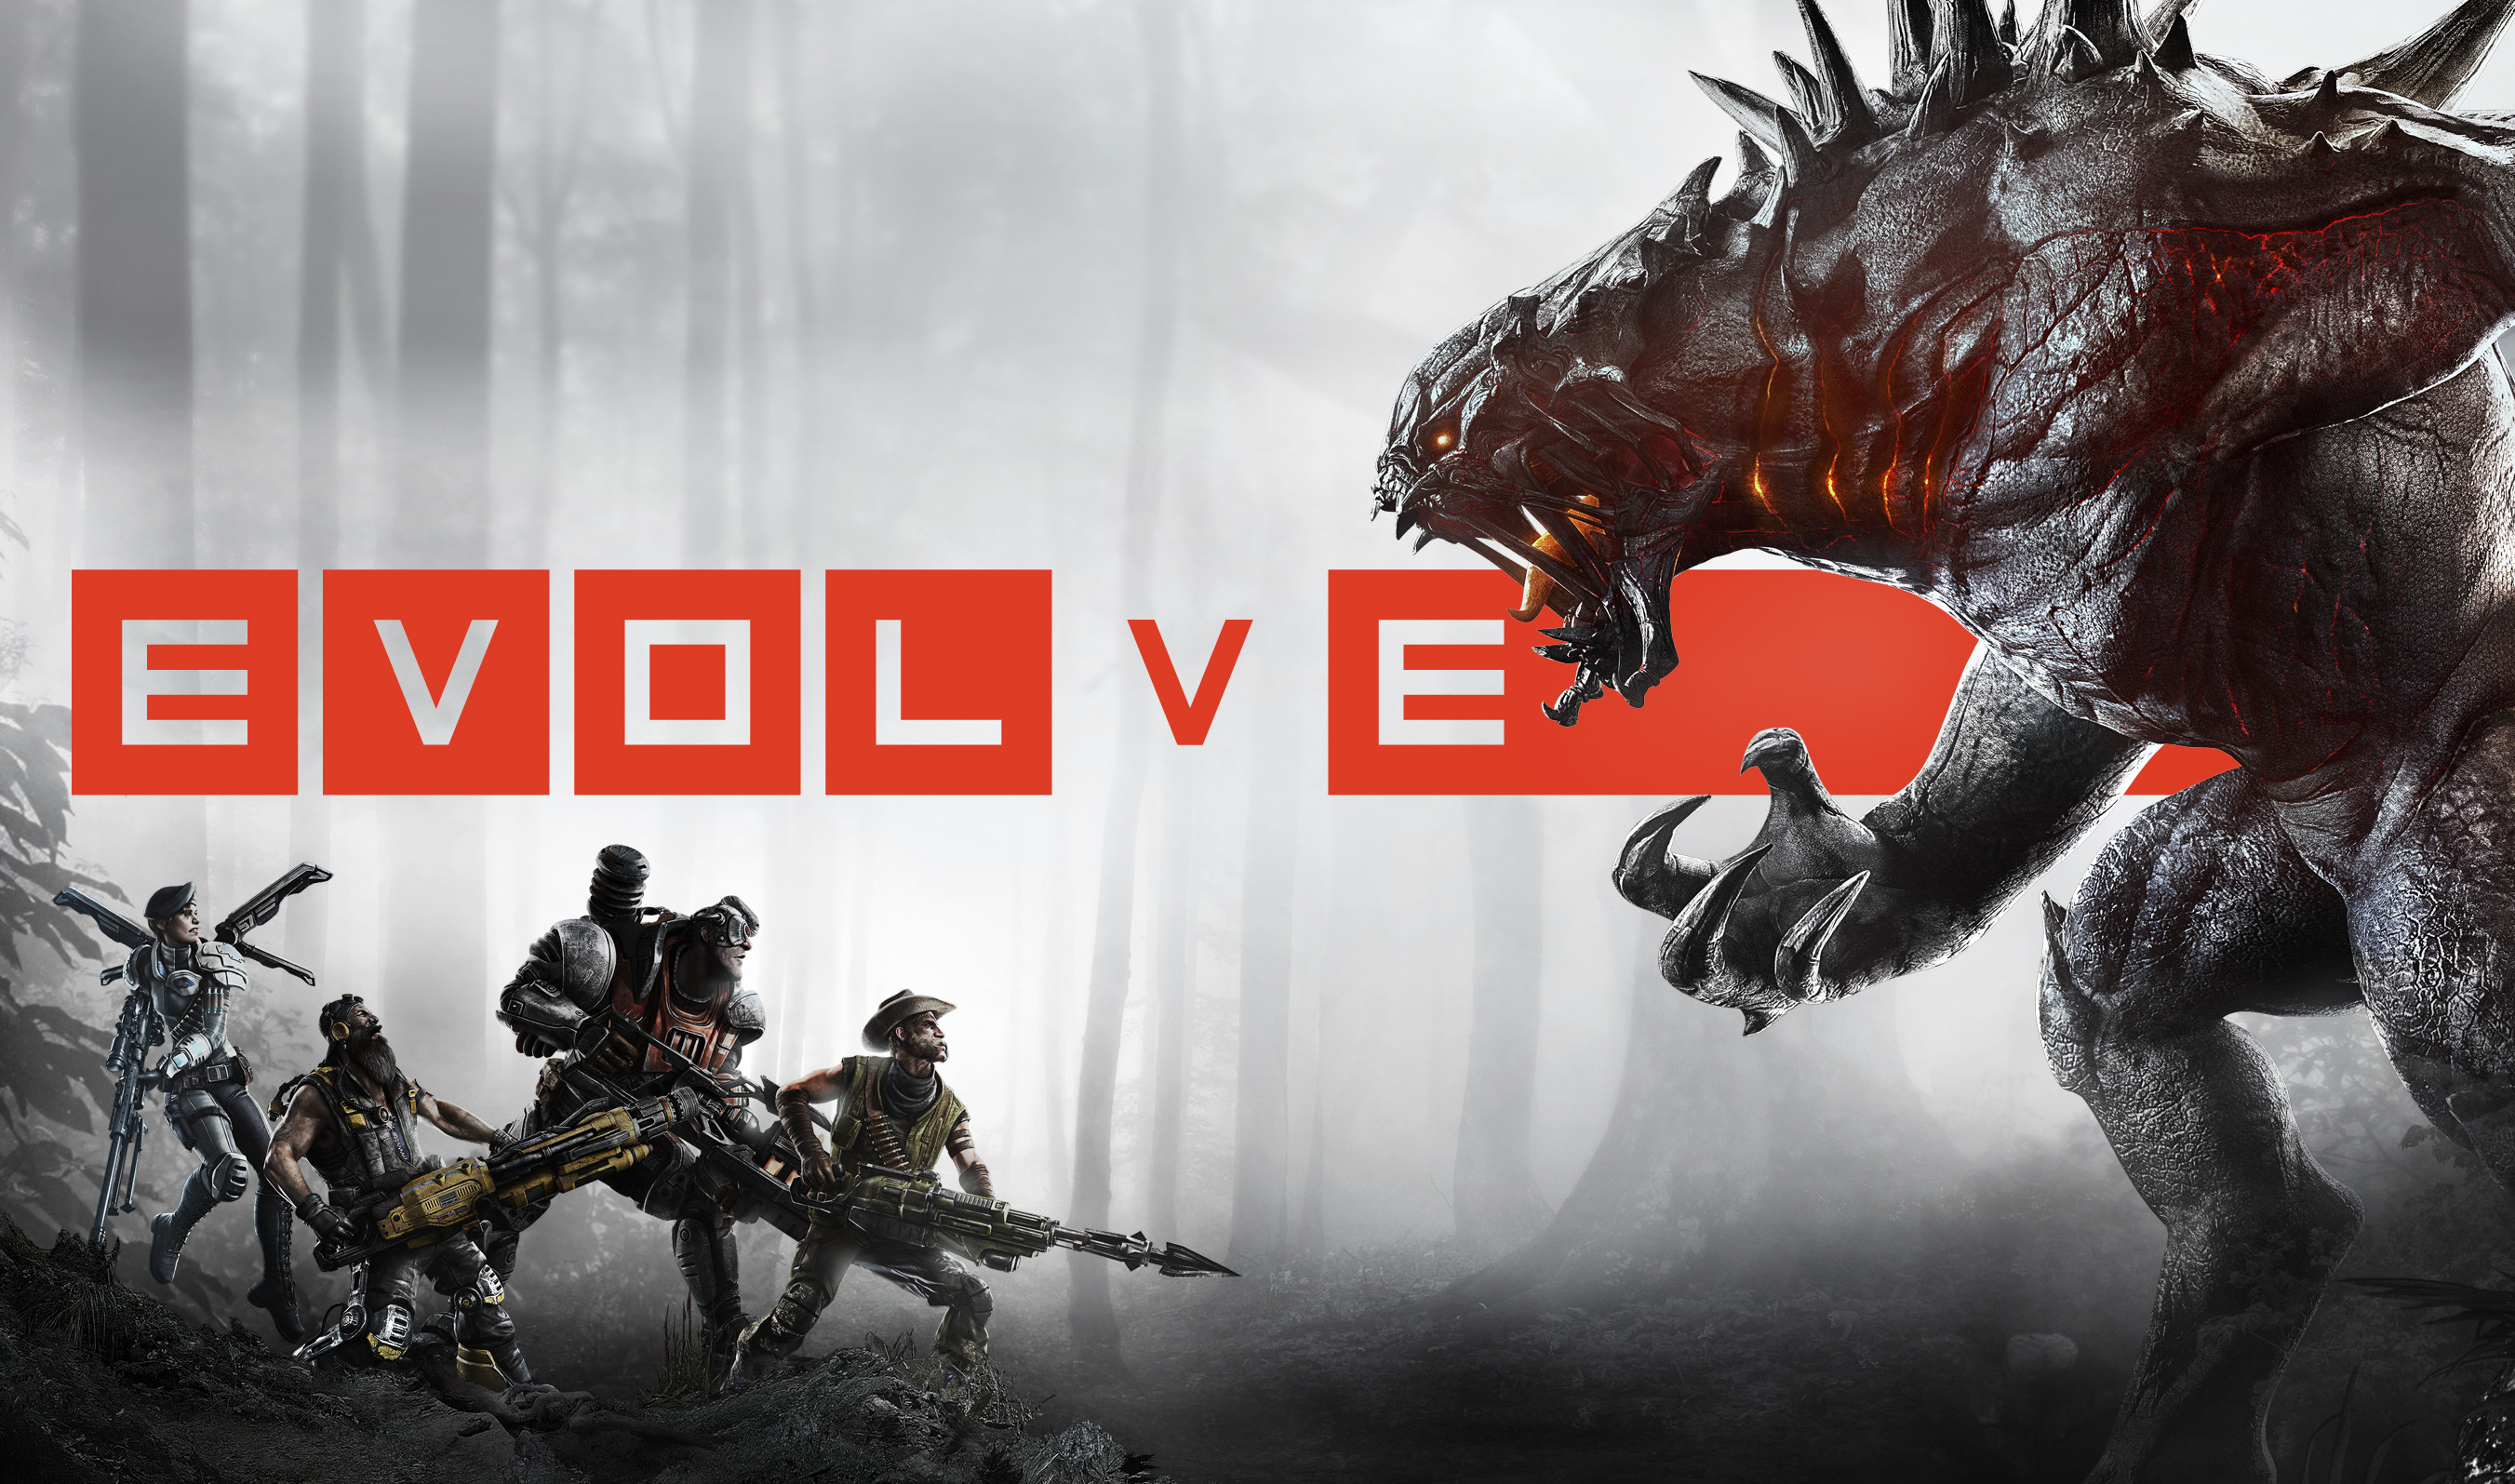 Evolve Picture And Wallpaper